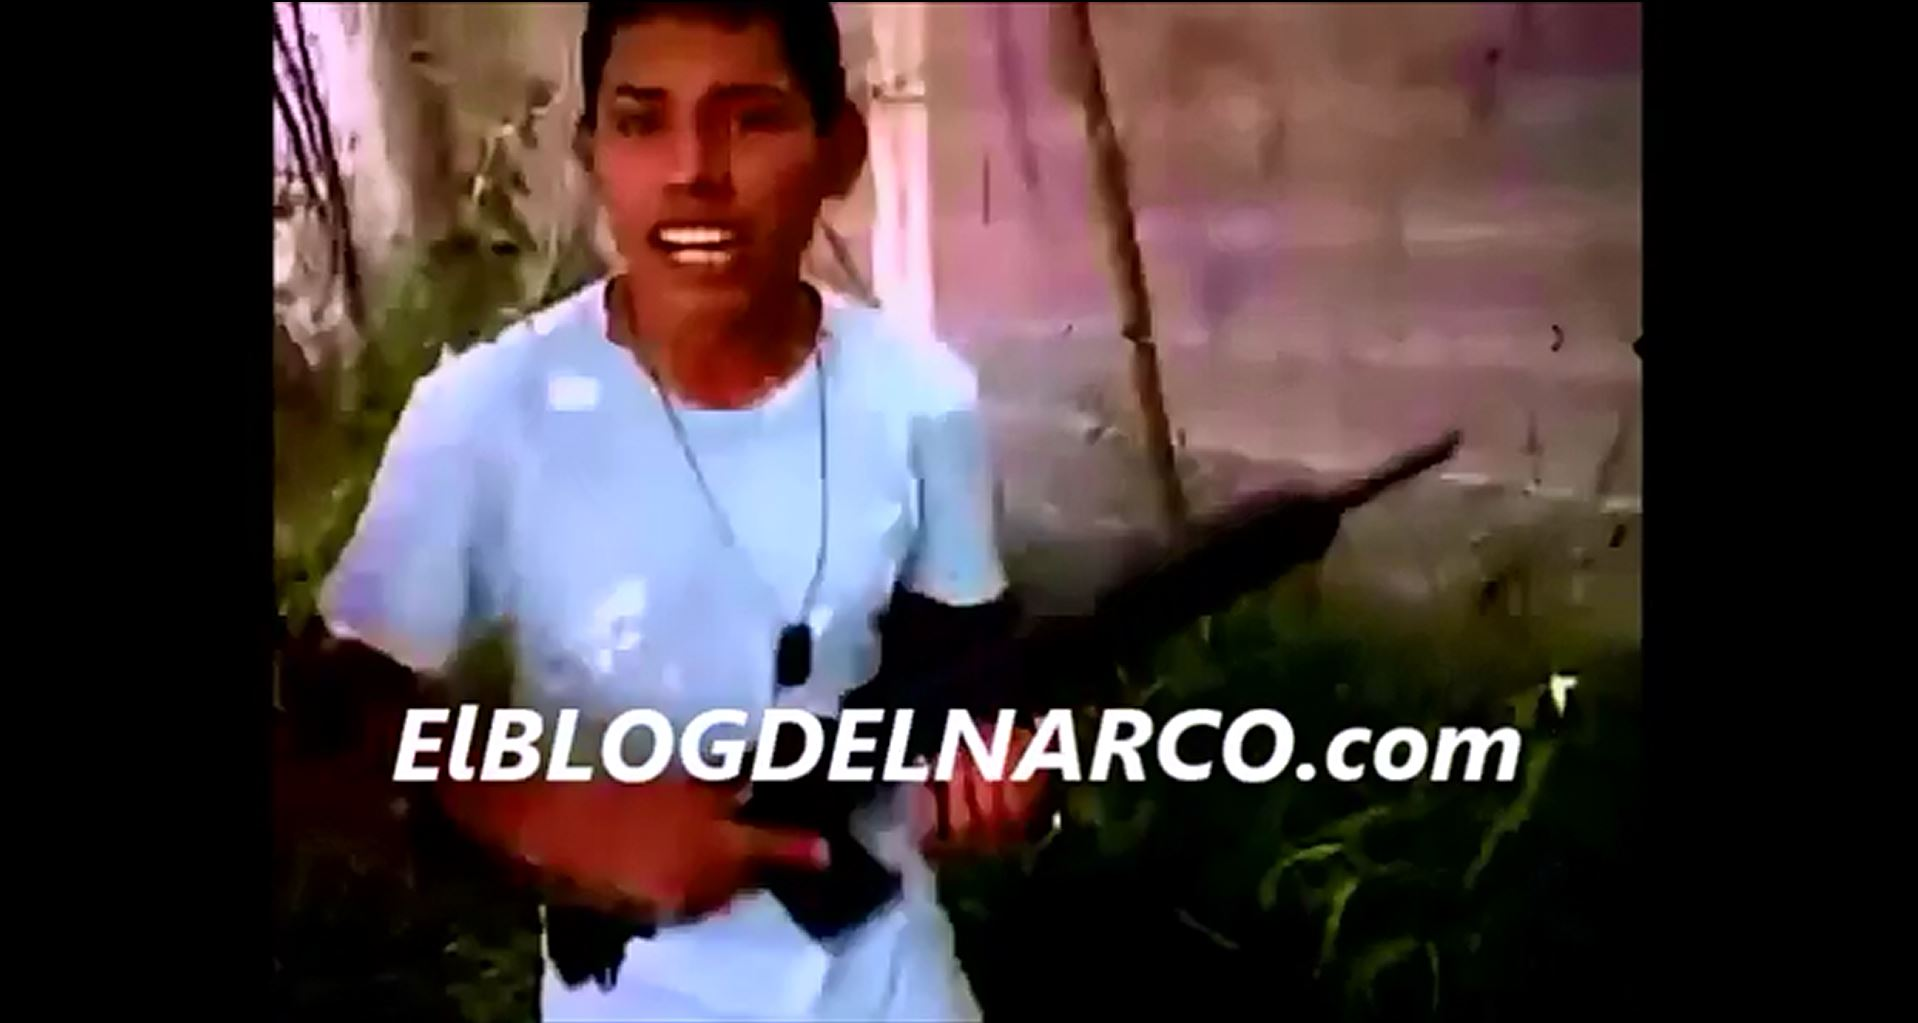 Leaked Video Claims To Show Young Mexican Drug Cartel